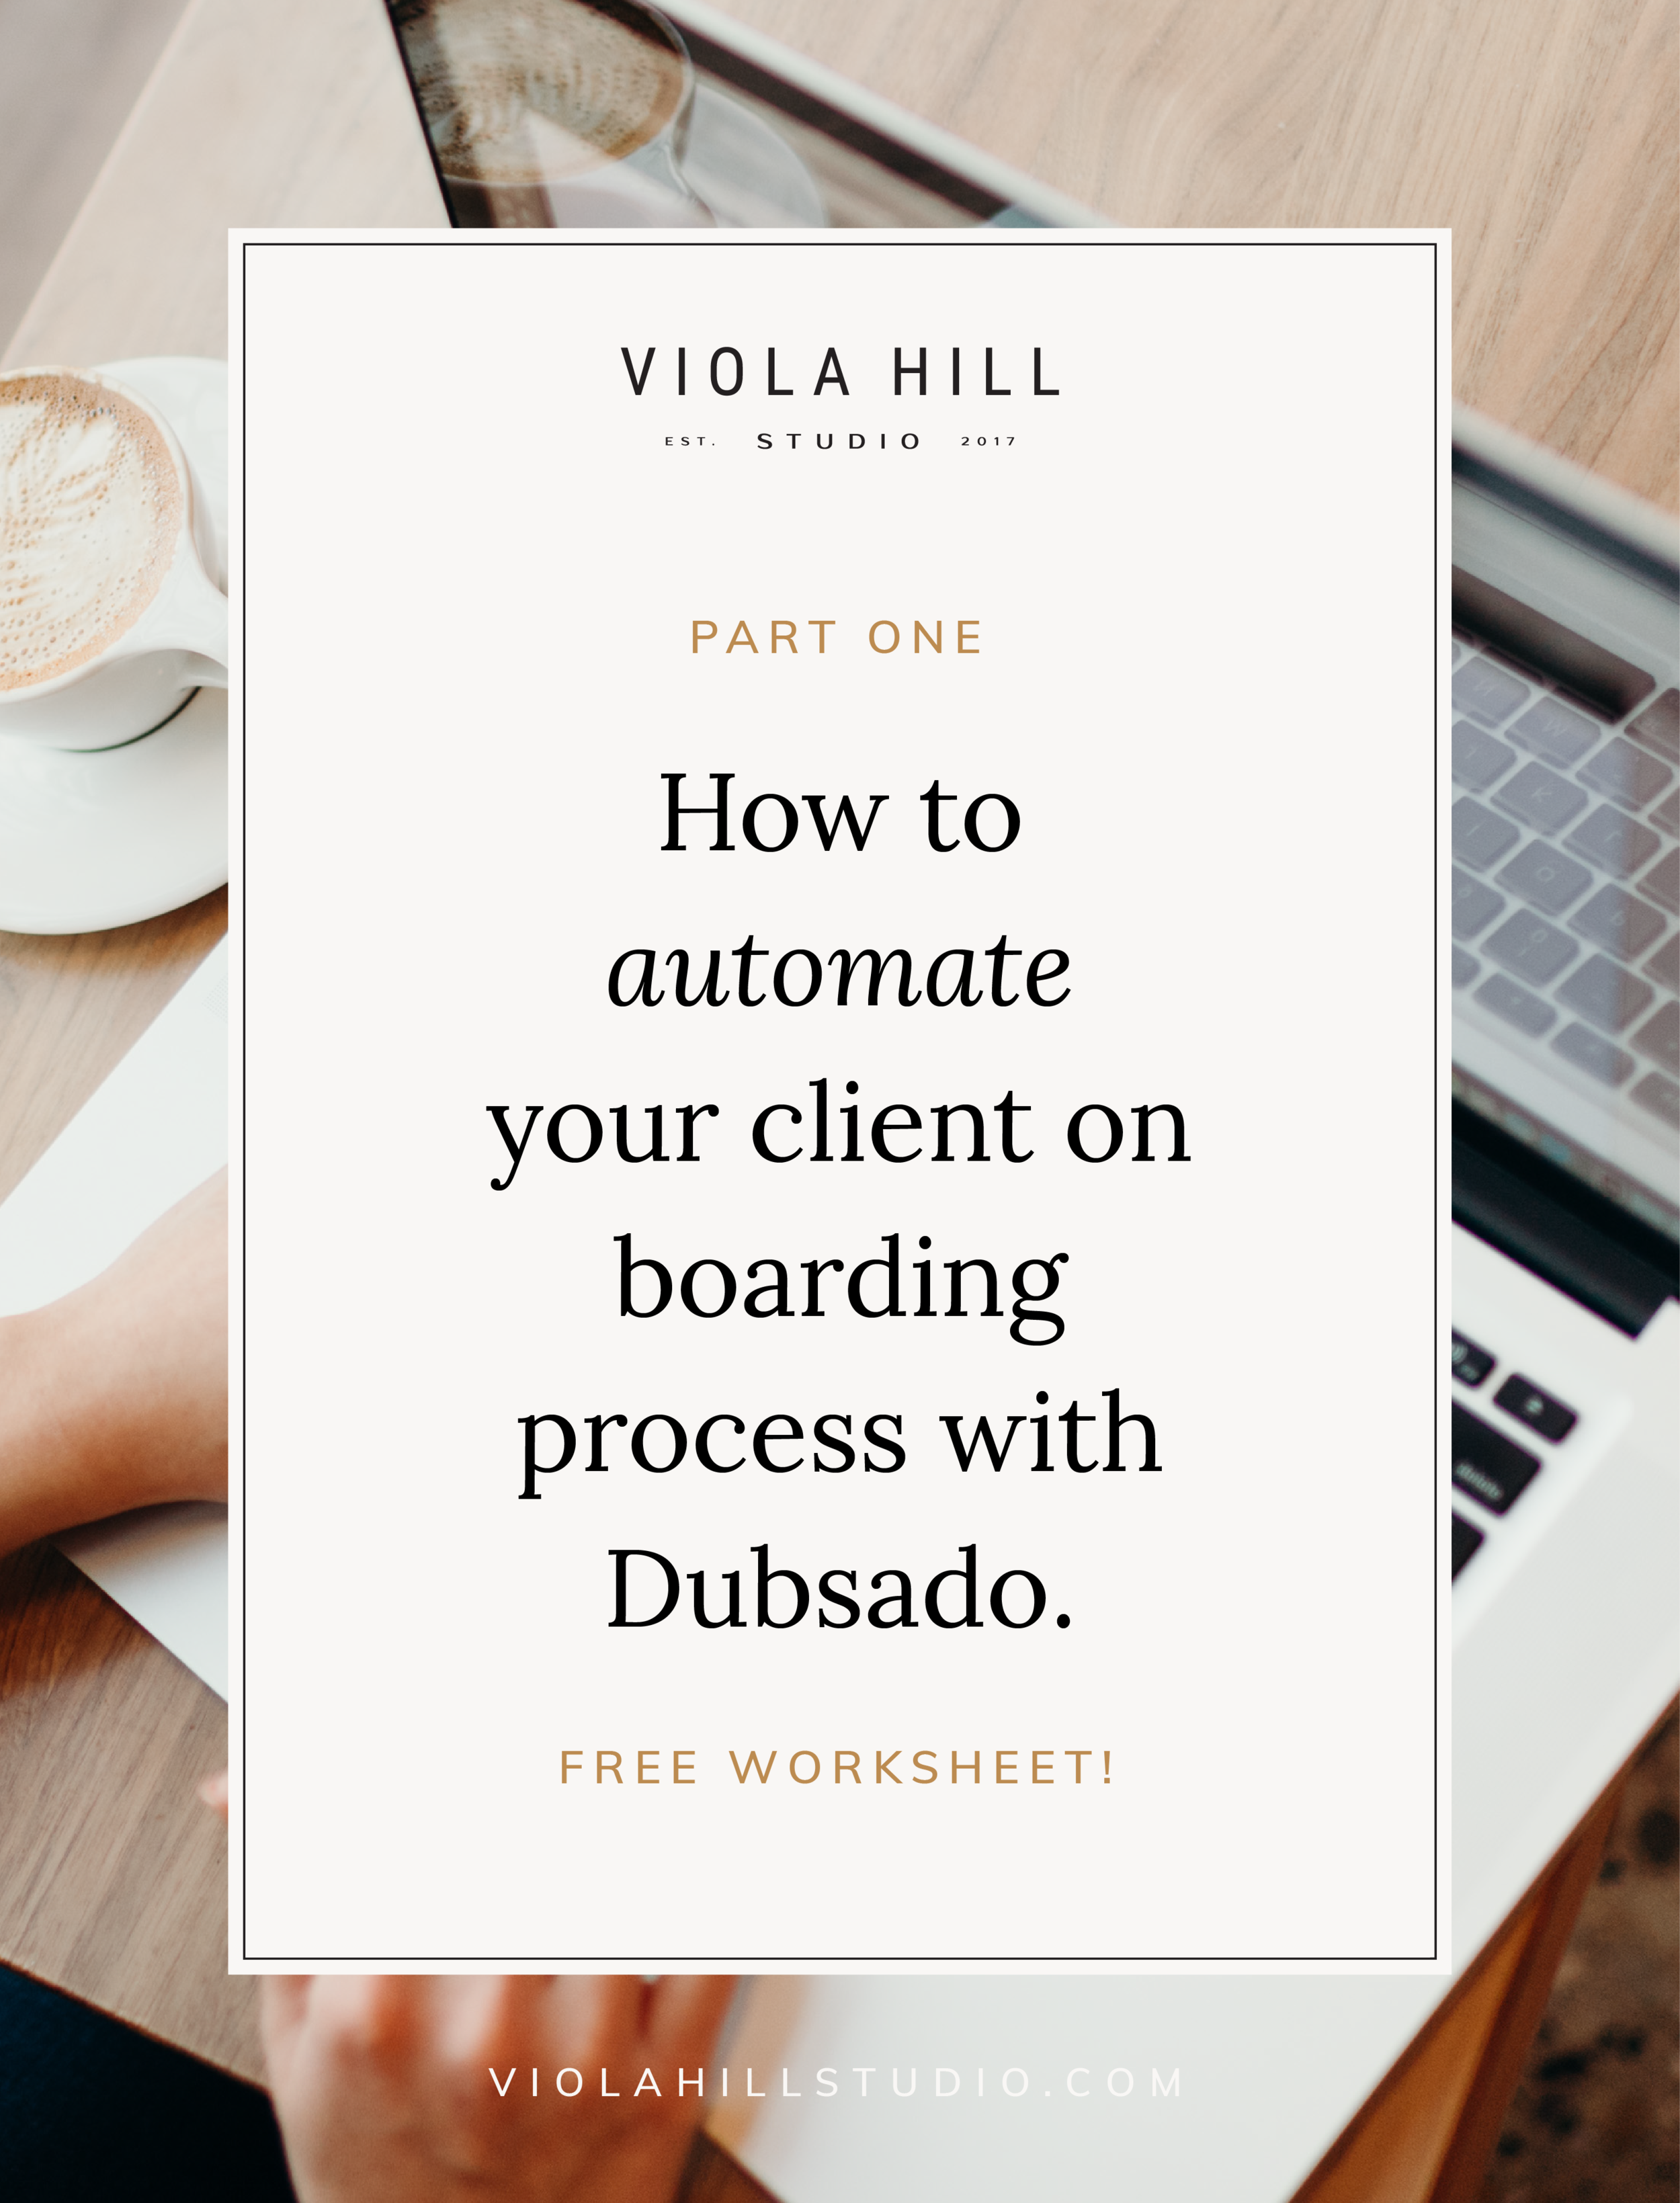 automate-client-on-boarding-process-dubsado.png